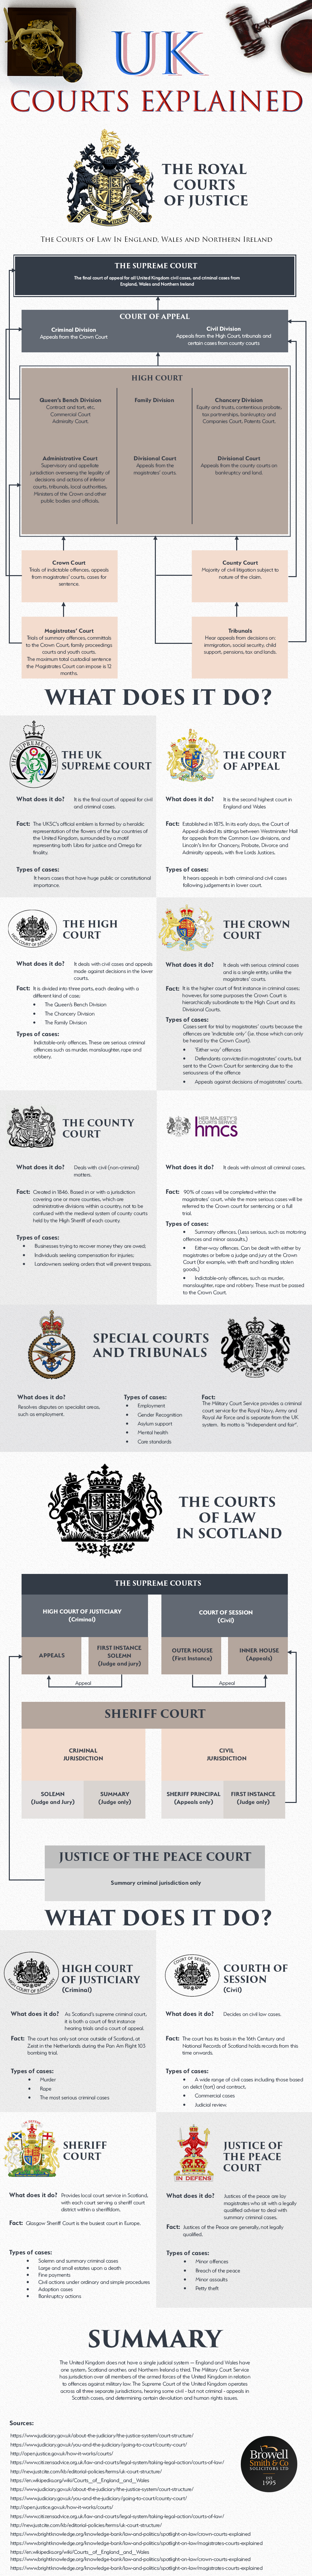 Everything You Need To Know About UK Courts - Infographic